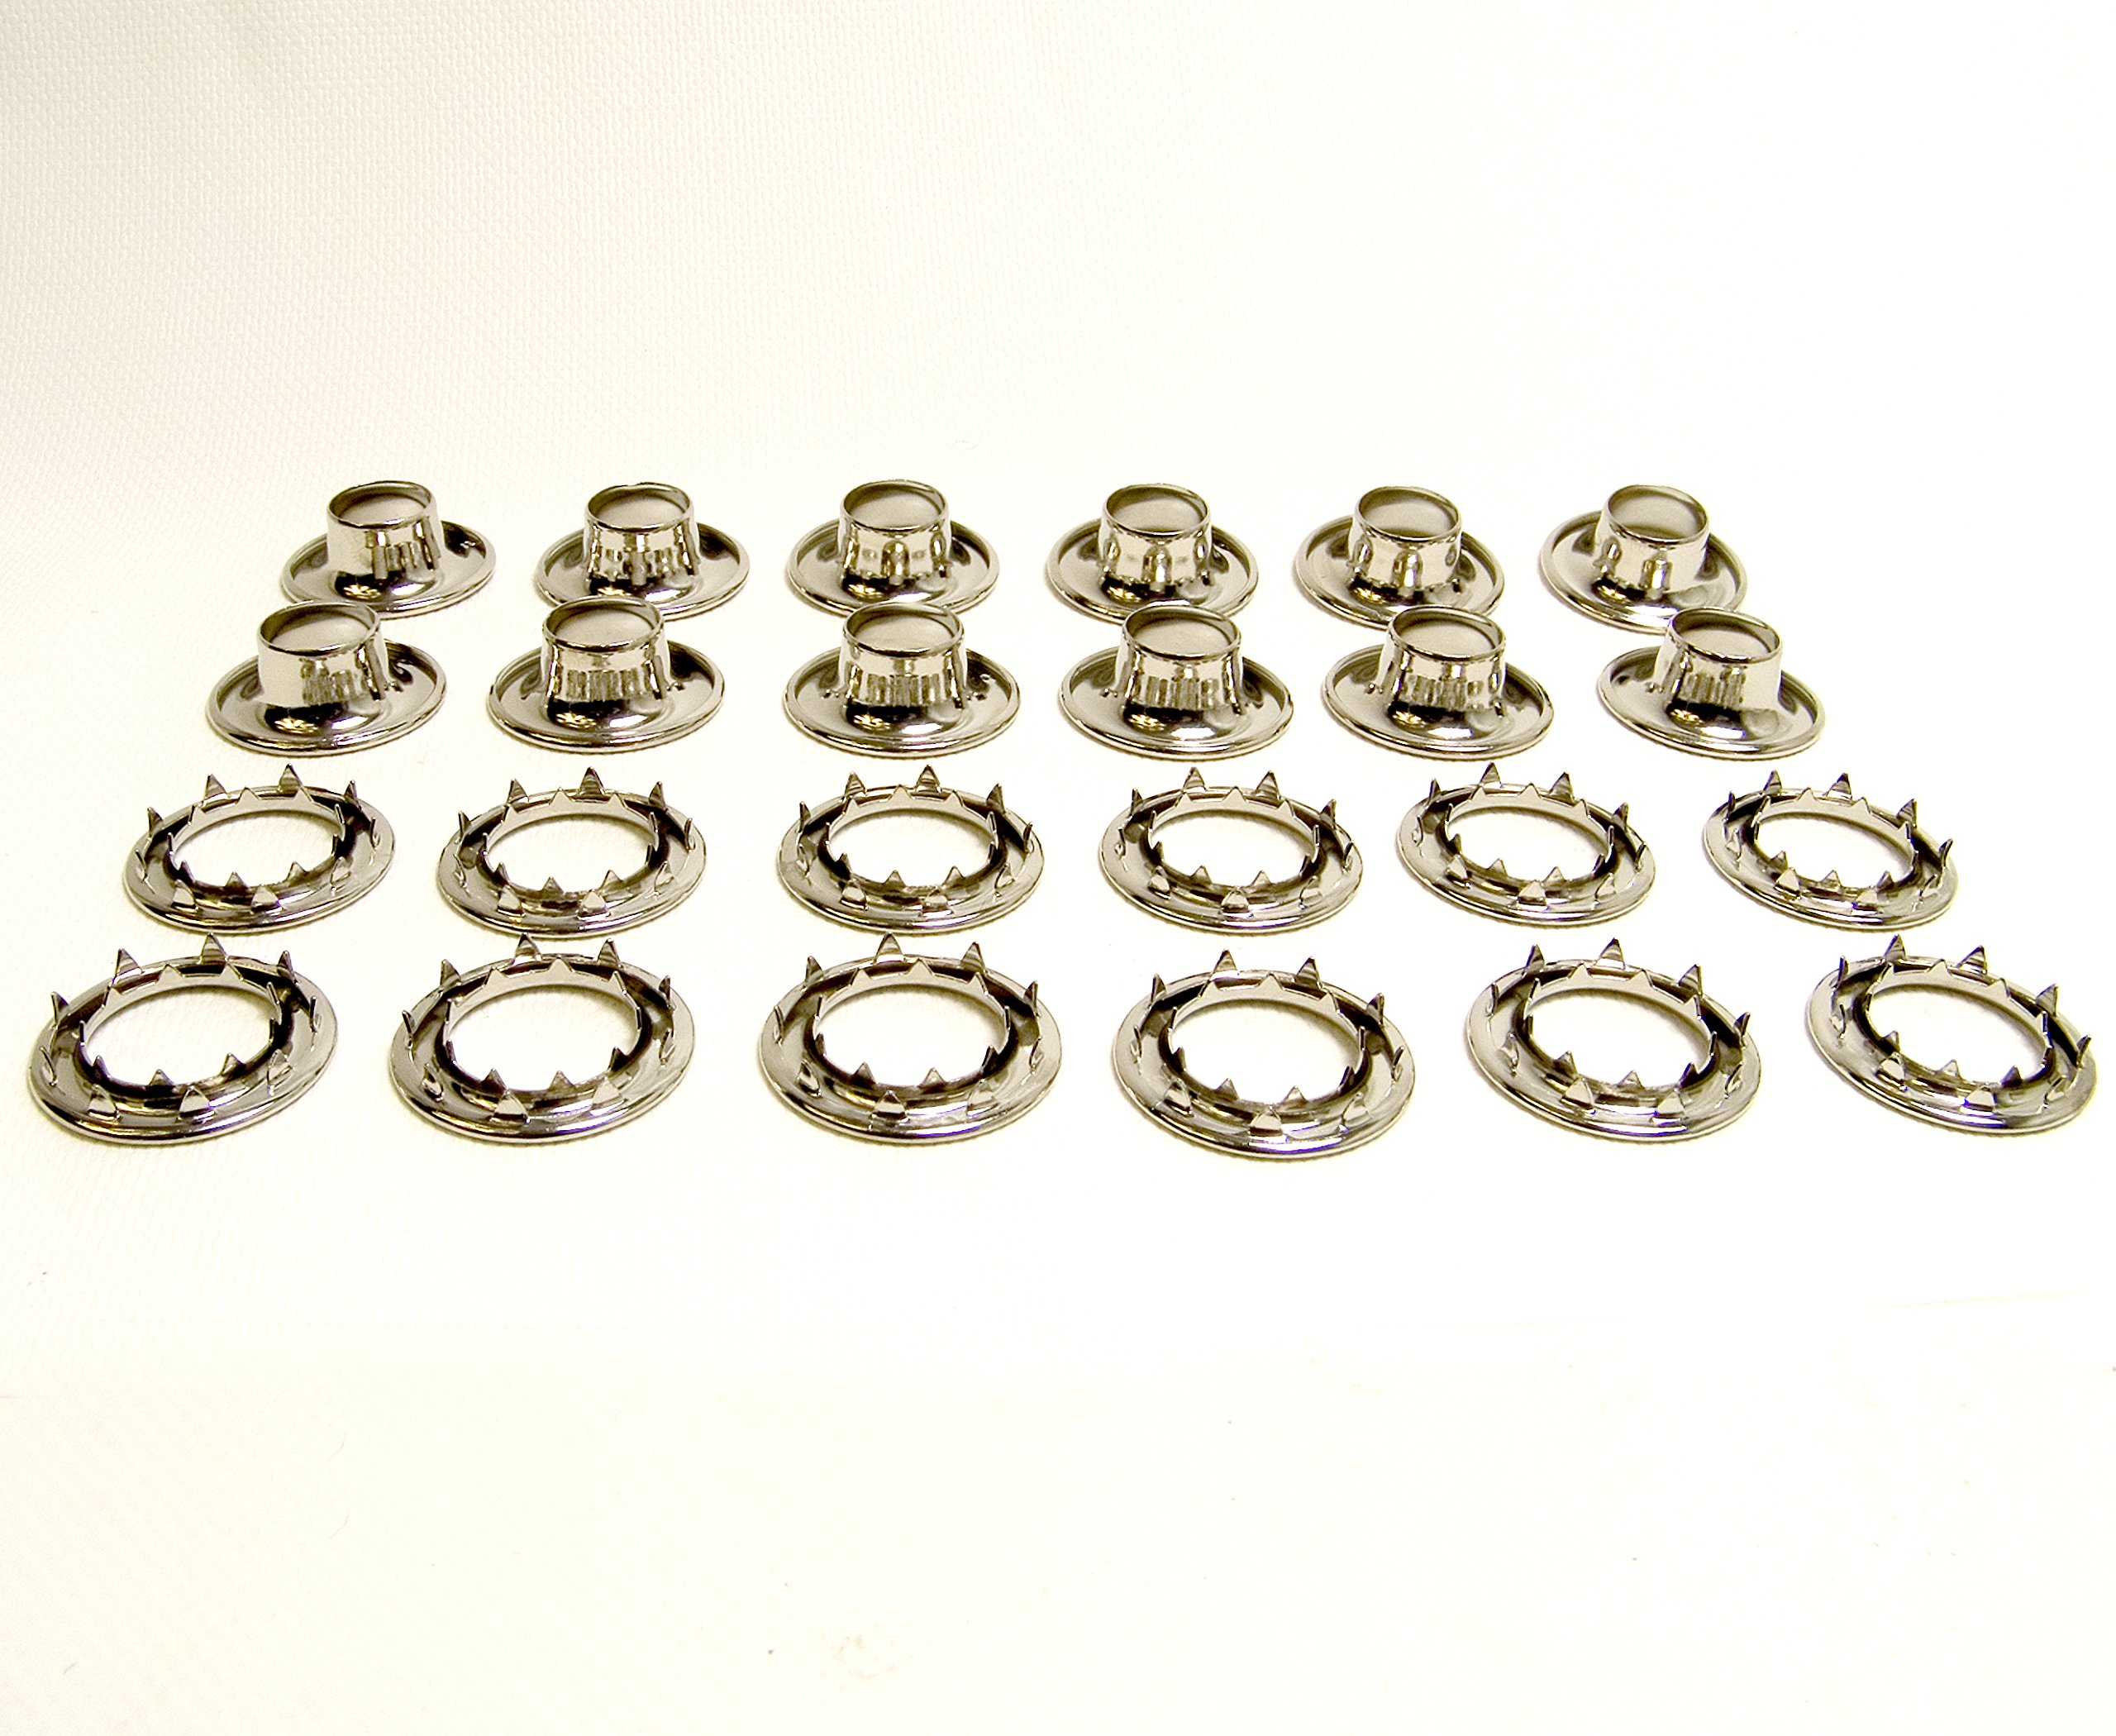 Grommets, #5 Nickle Plated Brass, Heavy Duty Rolled Rim Spur, 5/8'' Inch Hole, 12 Pc. Set - N.W. Tarp & Canvas